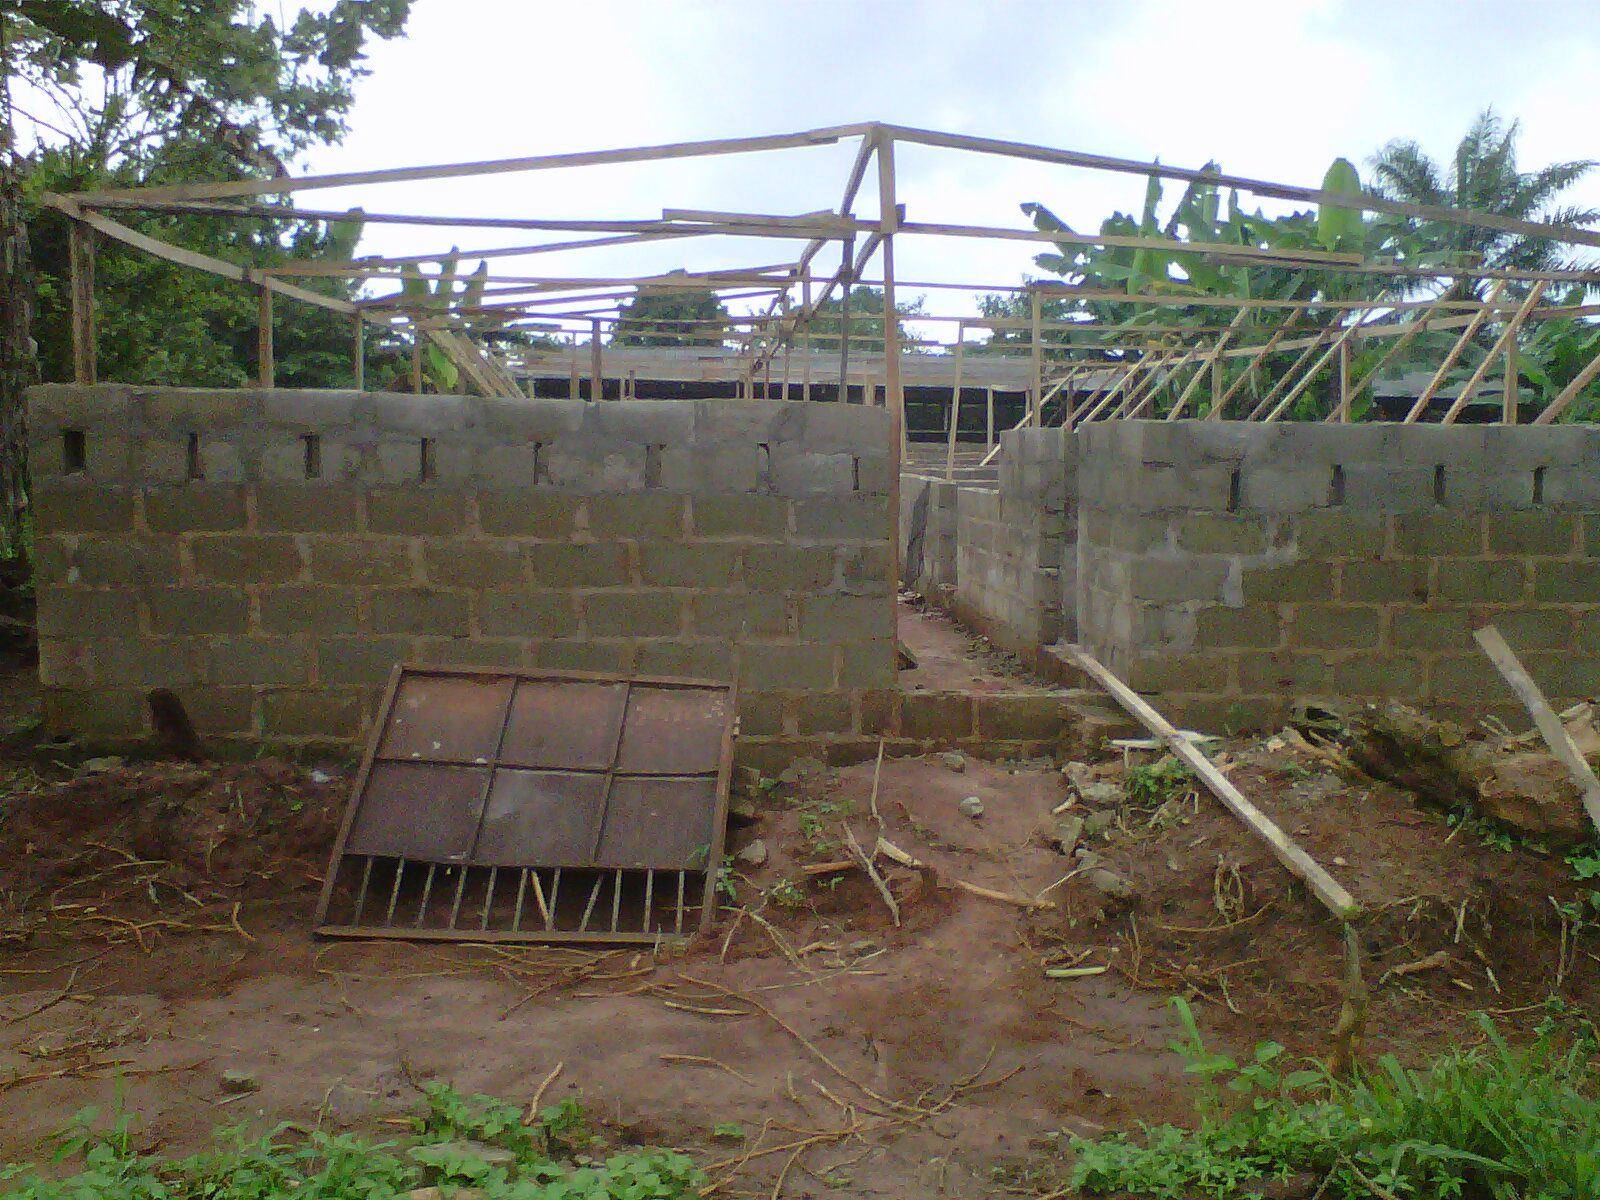 Constructing A Pig Pen No1 Pig Fan In 2020 Pig Farming Philippines House Design Pig House